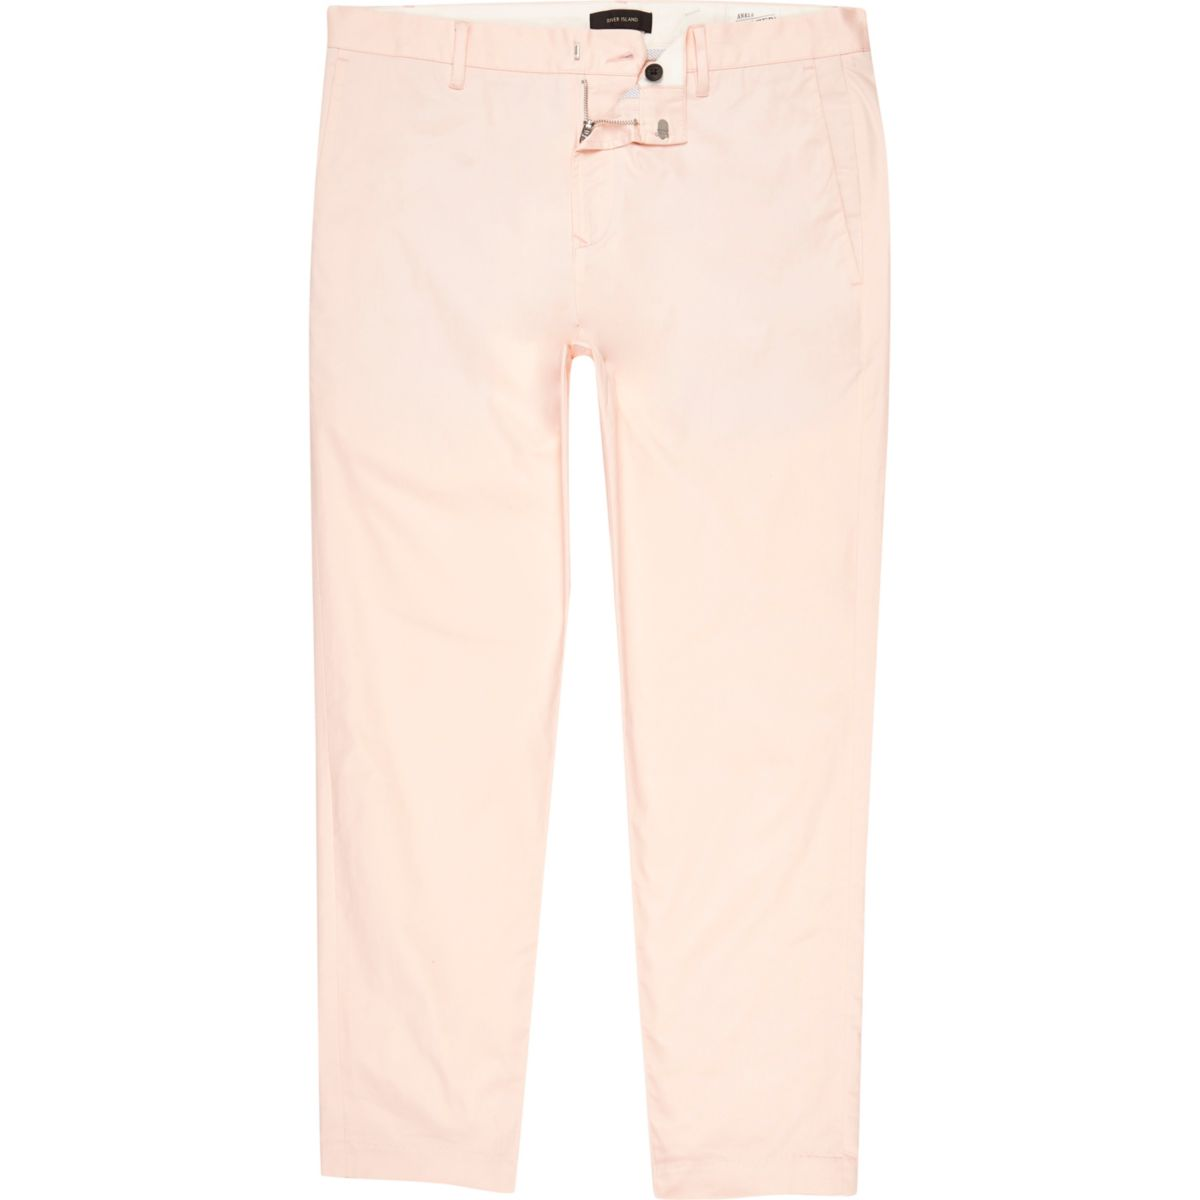 Peach slim fit ankle grazer chino pants